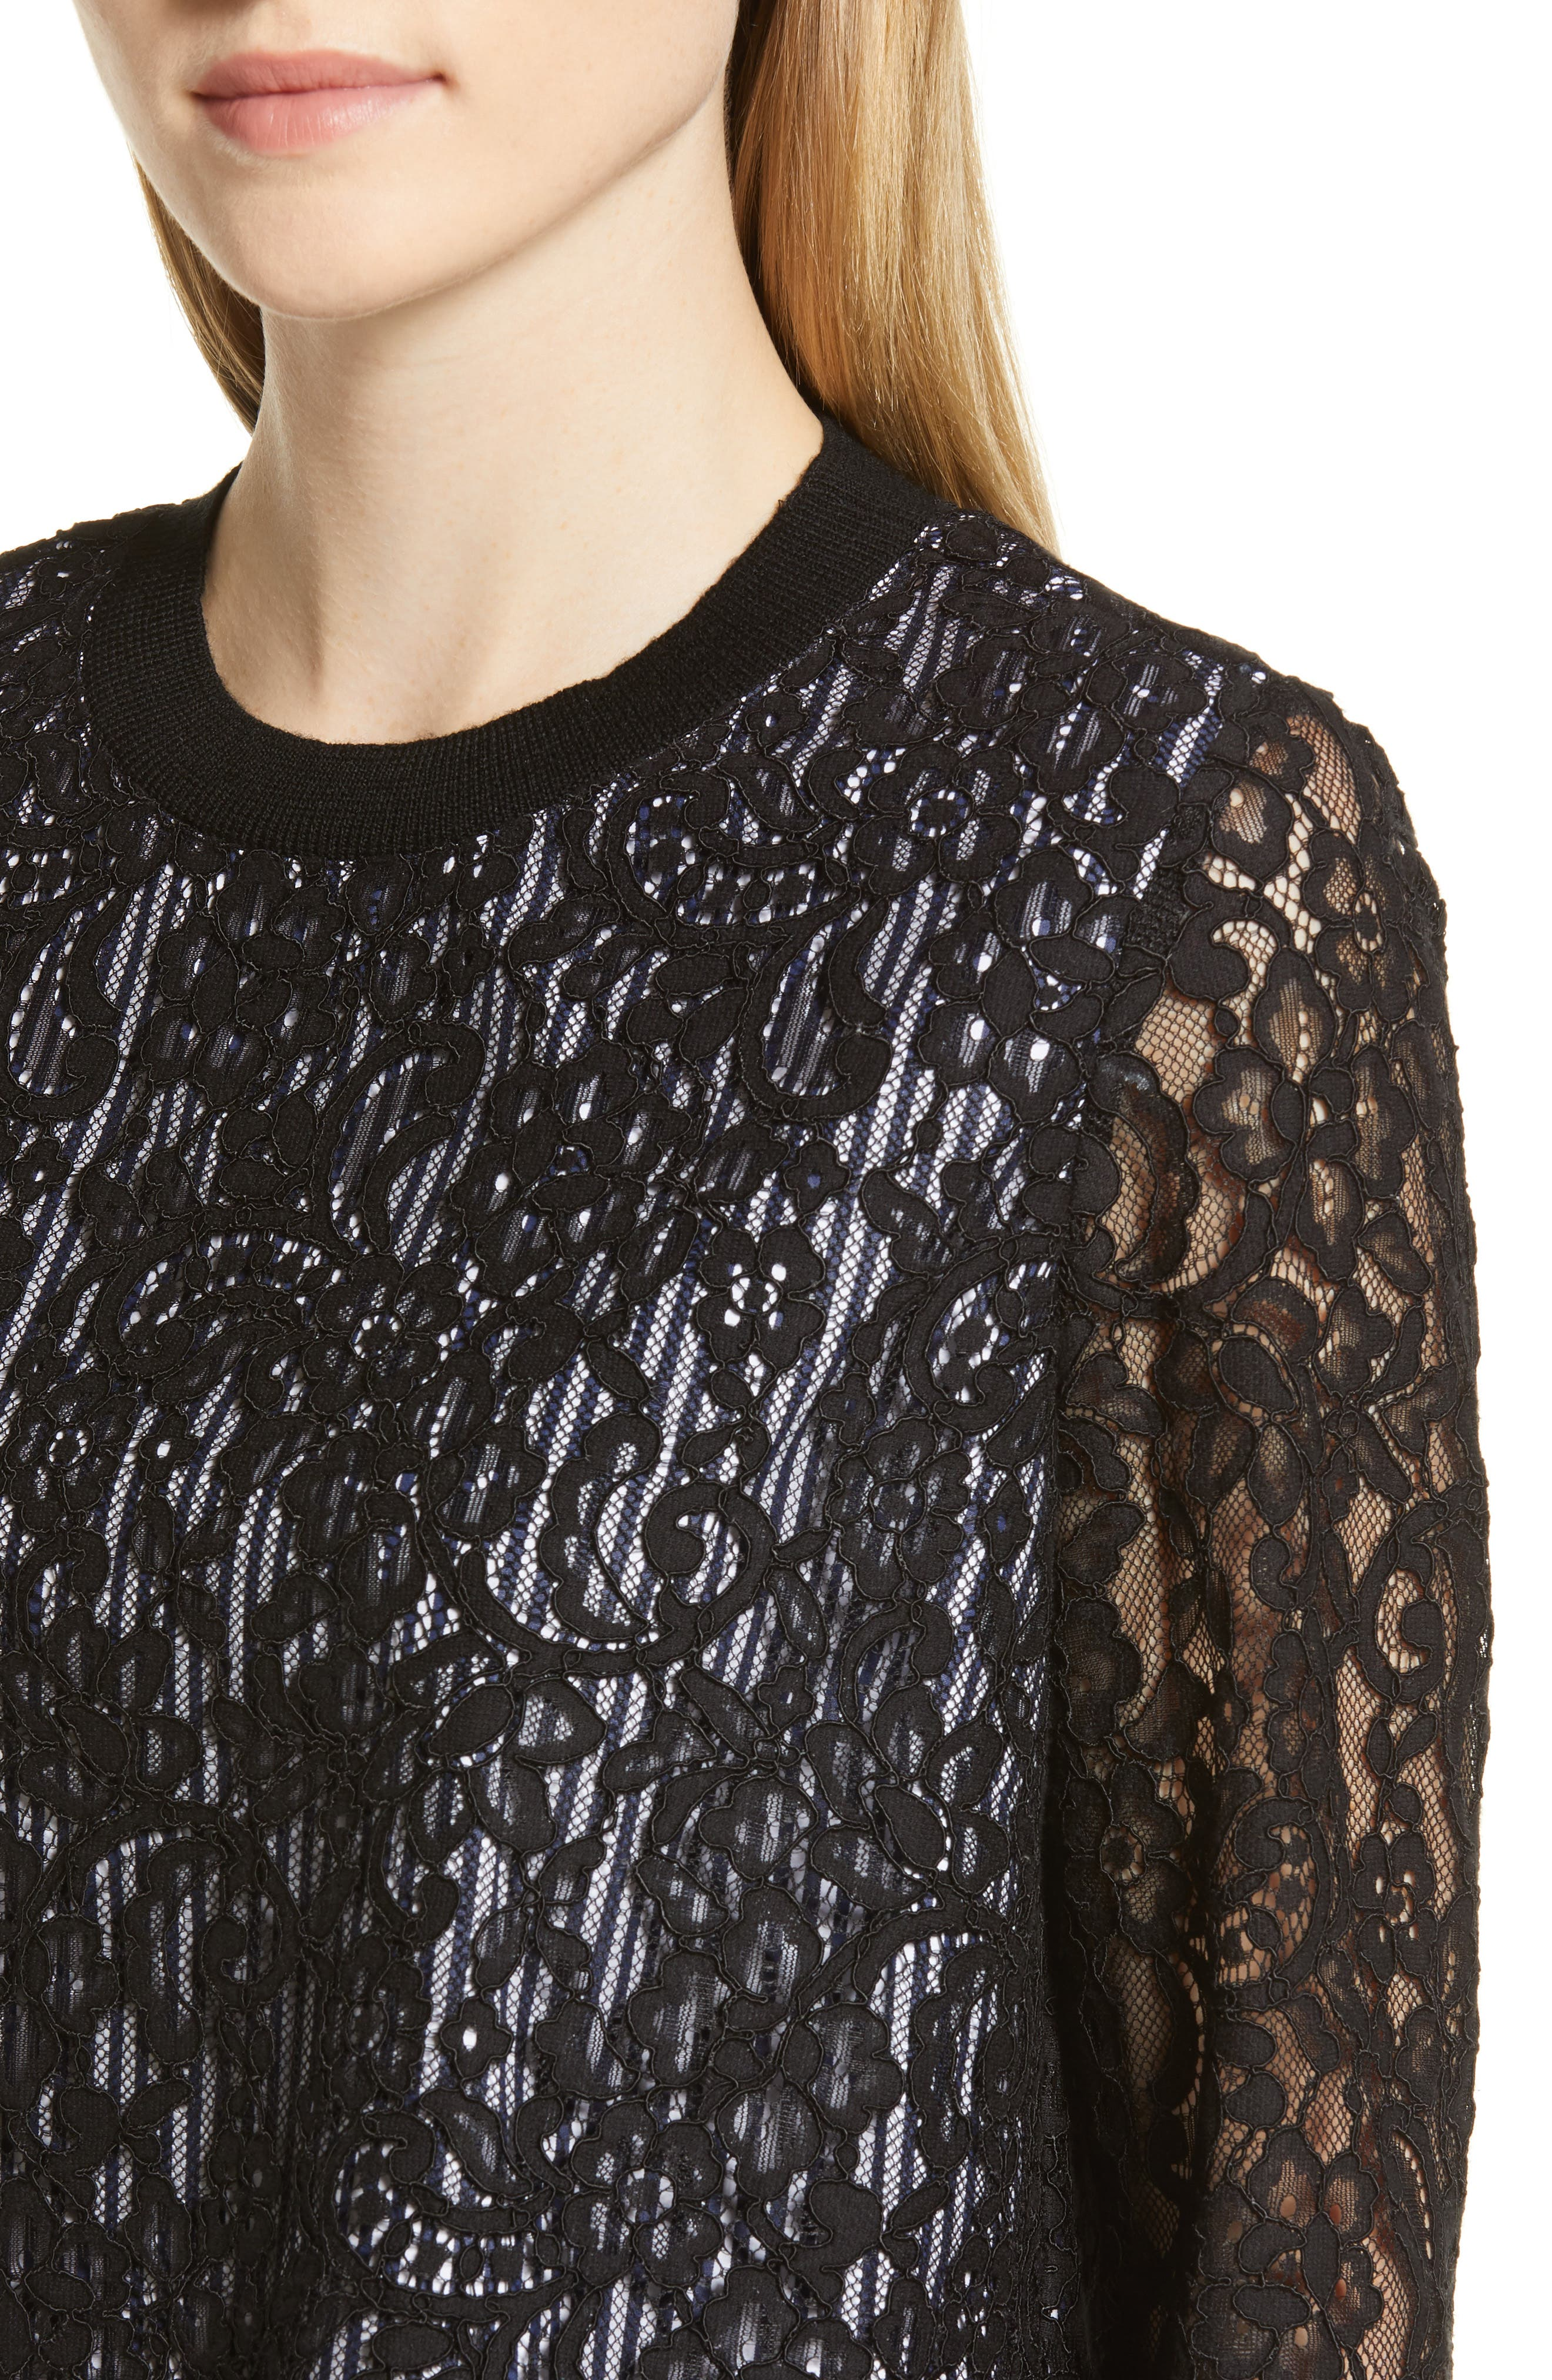 Solstice Stripe Lace Blouse,                             Alternate thumbnail 4, color,                             JET BLACK